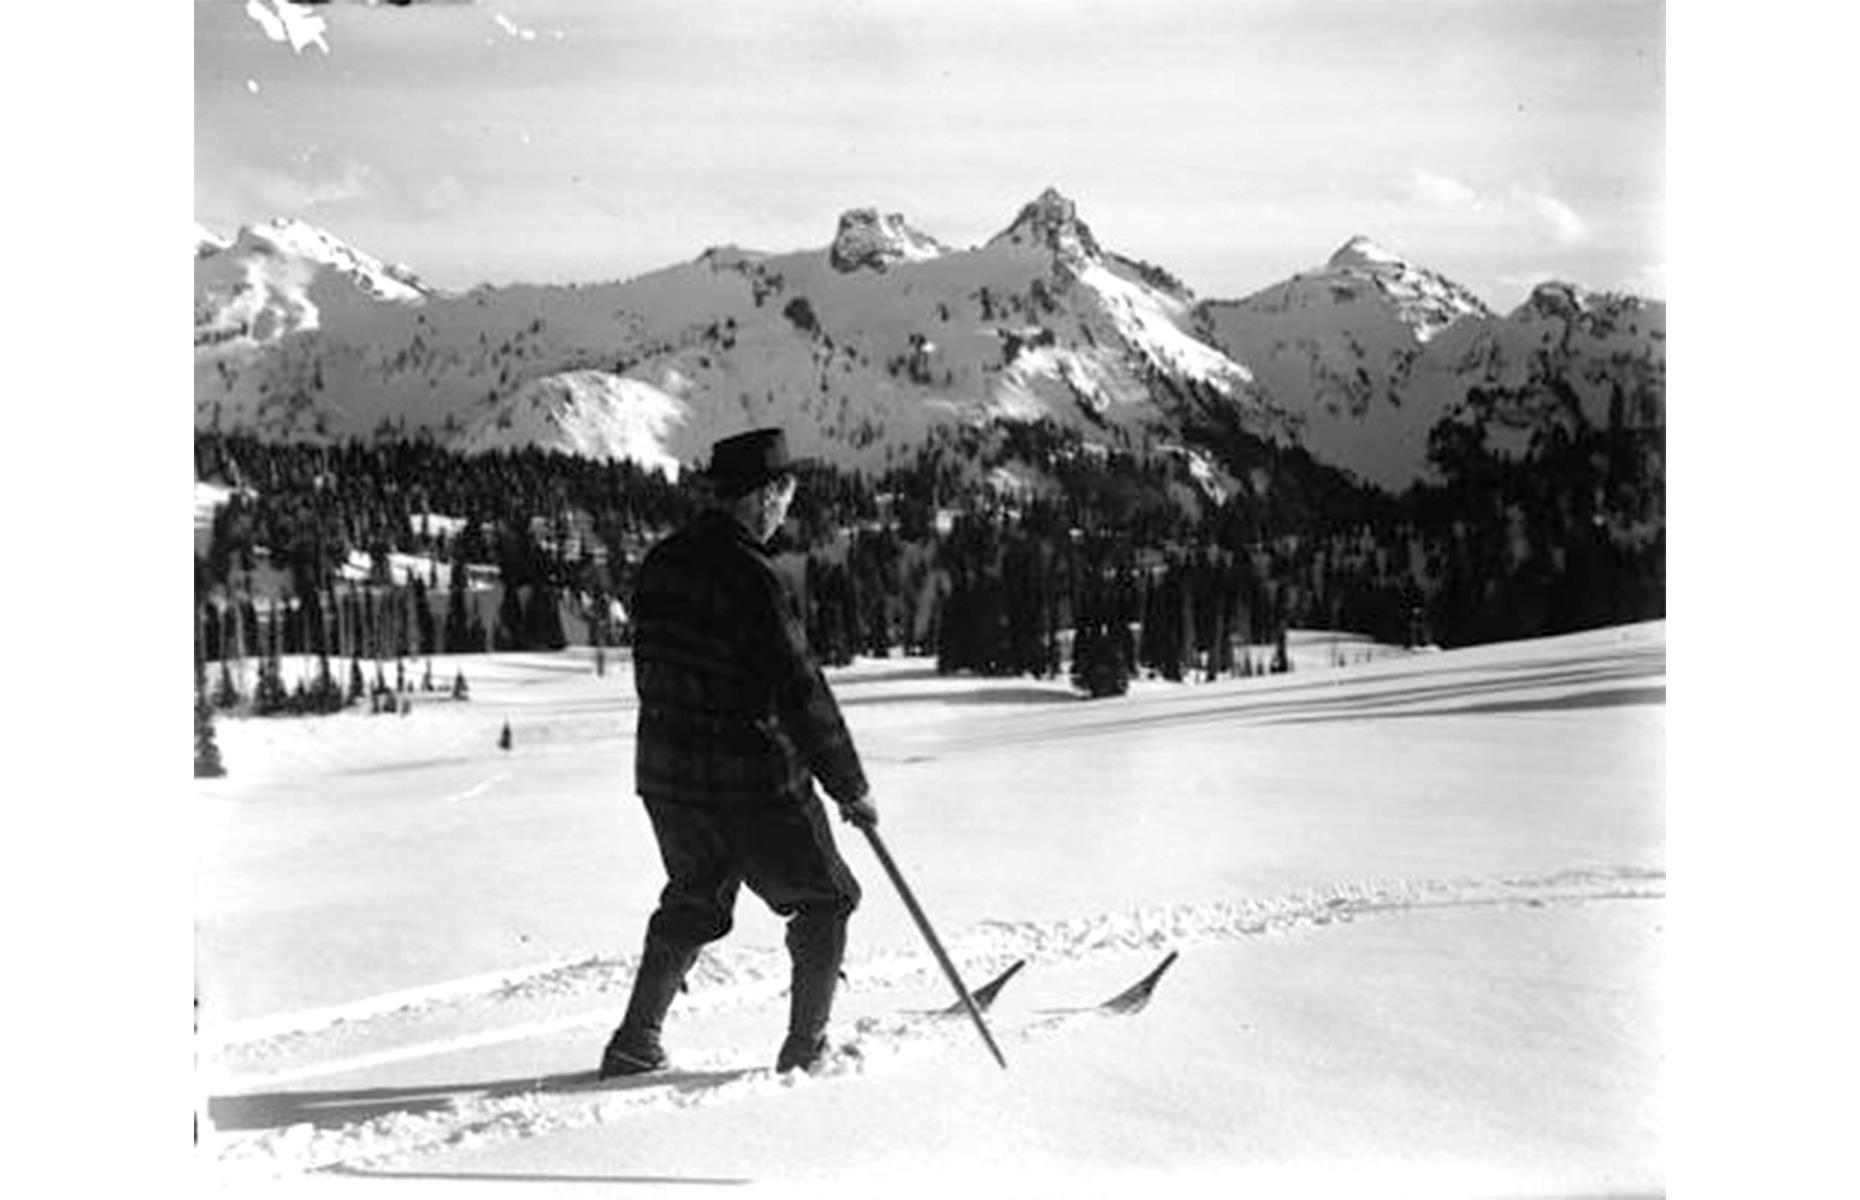 Slide 28 of 47: The rest of the park has long been a popular spot for those wanting to hit the slopes too, with historic ski resorts peppering the area. This keen skier can be seen in the powder right back in 1907.